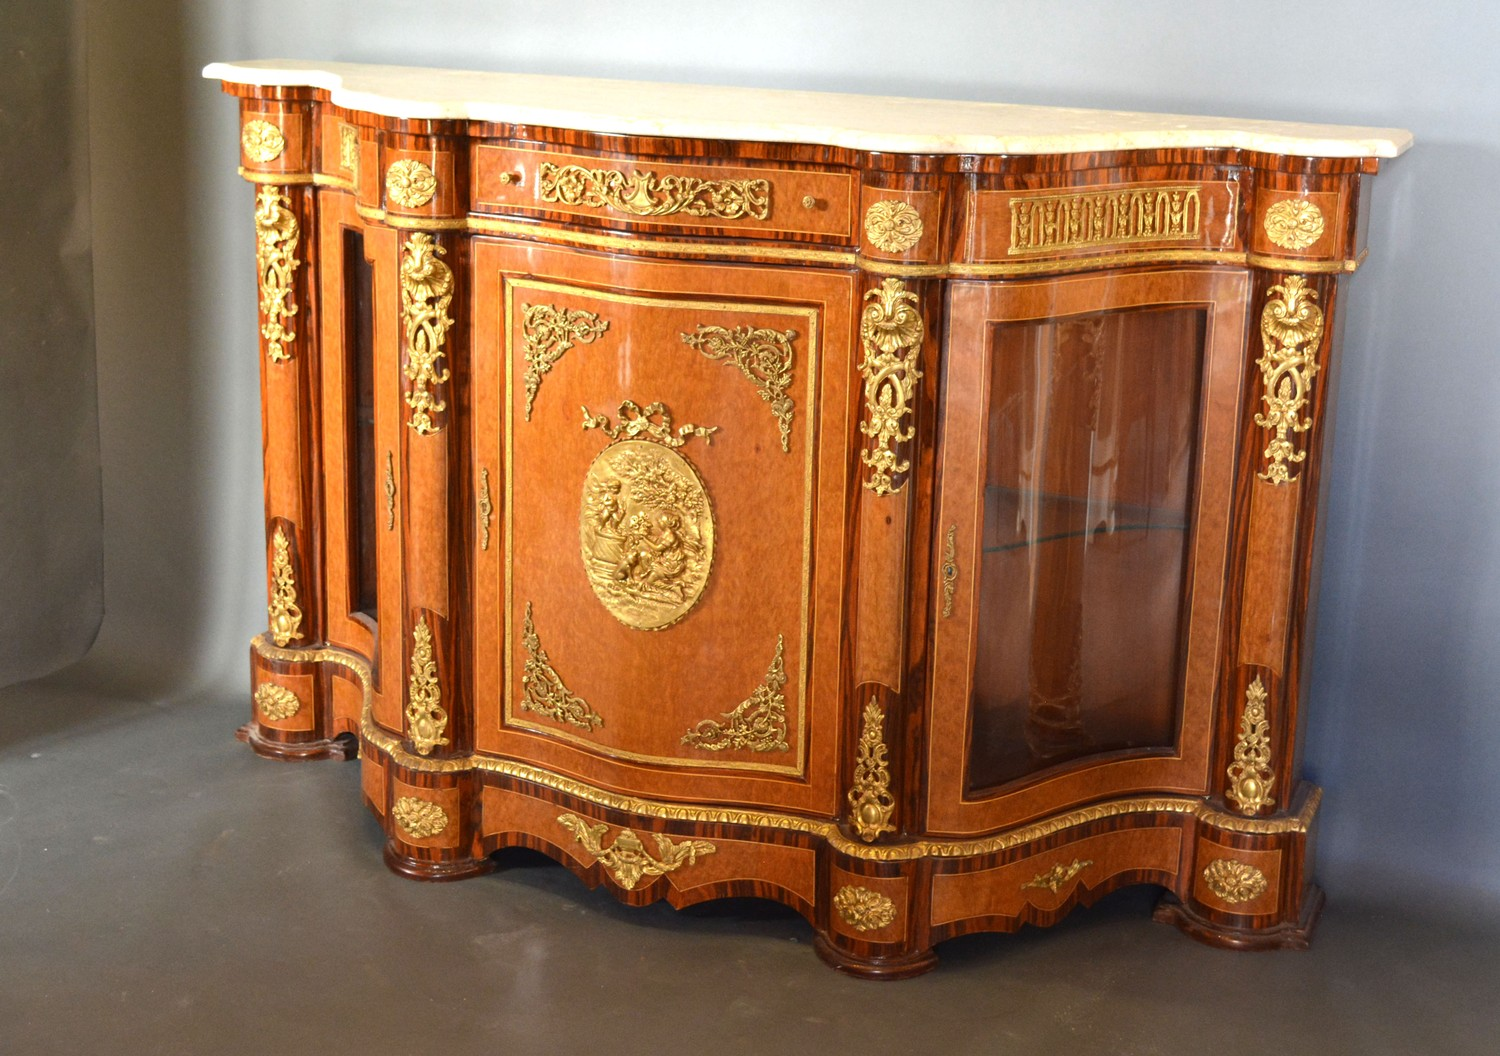 A French style walnut, gilt metal mounted serpentine Credenza cabinet, the variegated marble top - Image 2 of 3